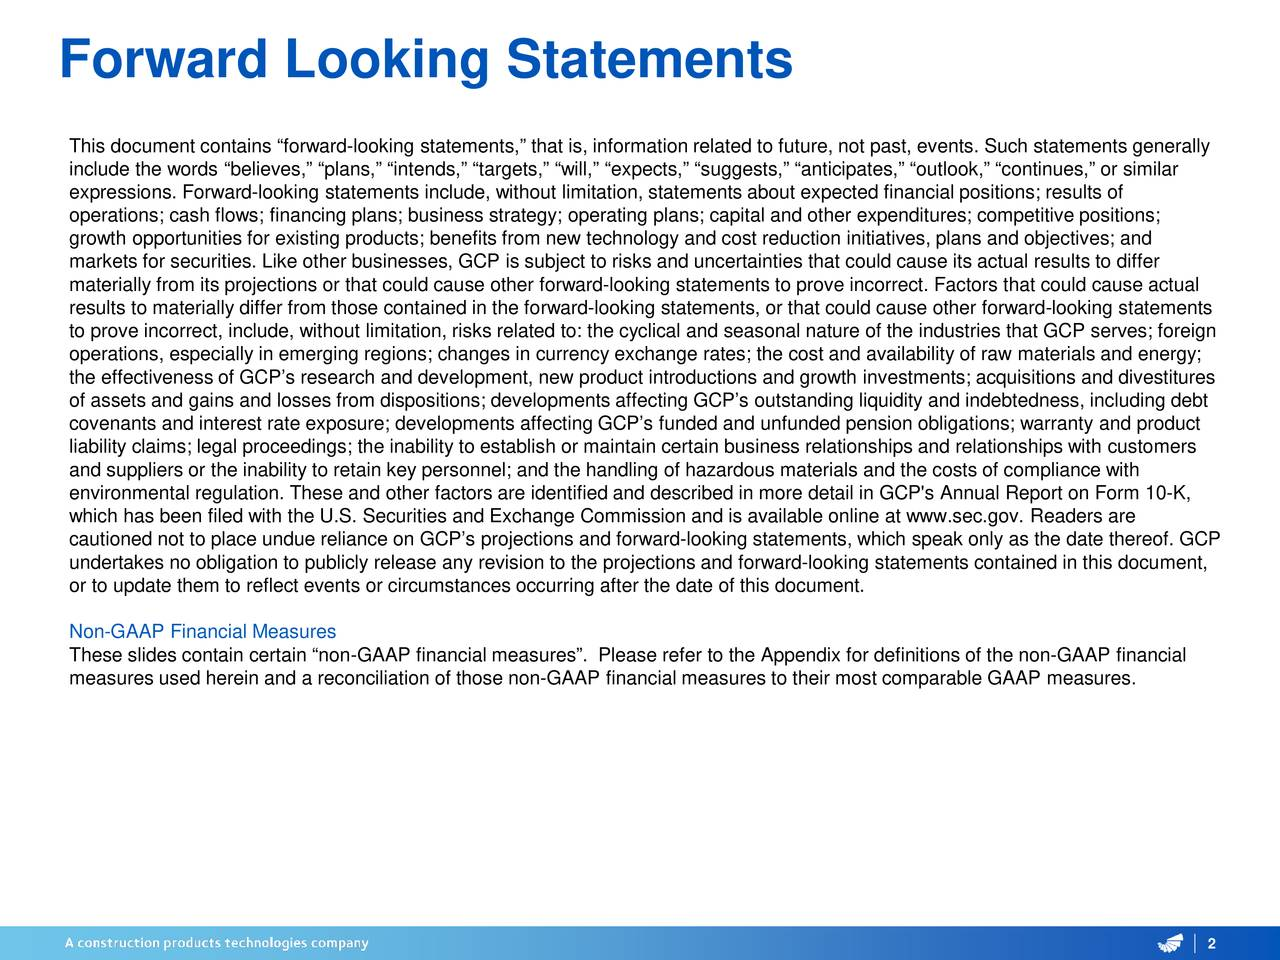 """This document contains """"forward-looking statements,"""" that is, information related to future, not past, events. Such statements generally include the words """"believes,"""" """"plans,"""" """"intends,"""" """"targets,"""" """"will,"""" """"expects,"""" """"suggests,"""" """"anticipates,"""" """"outlook,"""" """"continues,"""" or similar expressions. Forward-looking statements include, without limitation, statements about expected financial positions; results of operations; cash flows; financing plans; business strategy; operating plans; capital and other expenditures; competitive postiions; growth opportunities for existing products; benefits from new technology and cost reduction initiatives, plans and objectives; and markets for securities. Like other businesses, GCP is subject to risks and uncertainties that could cause its actual results to differ materially from its projections or that could cause other forward-looking statements to prove incorrect. Factors that could cause actual results to materially differ from those contained in the forward-looking statements, or that could cause other forward-looking statements to prove incorrect, include, without limitation, risks related to: the cyclical and seasonal nature of the industries that GCP serves; foreign operations, especially in emerging regions; changes in currency exchange rates; the cost and availability of raw materials and energy; the effectiveness of GCP's research and development, new product introductions and growth investments; acquisitions and divestitures of assets and gains and losses from dispositions; developments affecting GCP's outstanding liquidity and indebtedness, including debt covenants and interest rate exposure; developments affecting GCP's funded and unfunded pension obligations; warranty and product liability claims; legal proceedings; the inability to establish or maintain certain business relationships and relationships with customers and suppliers or the inability to retain key personnel; and the handling of hazardous materials and the cos"""